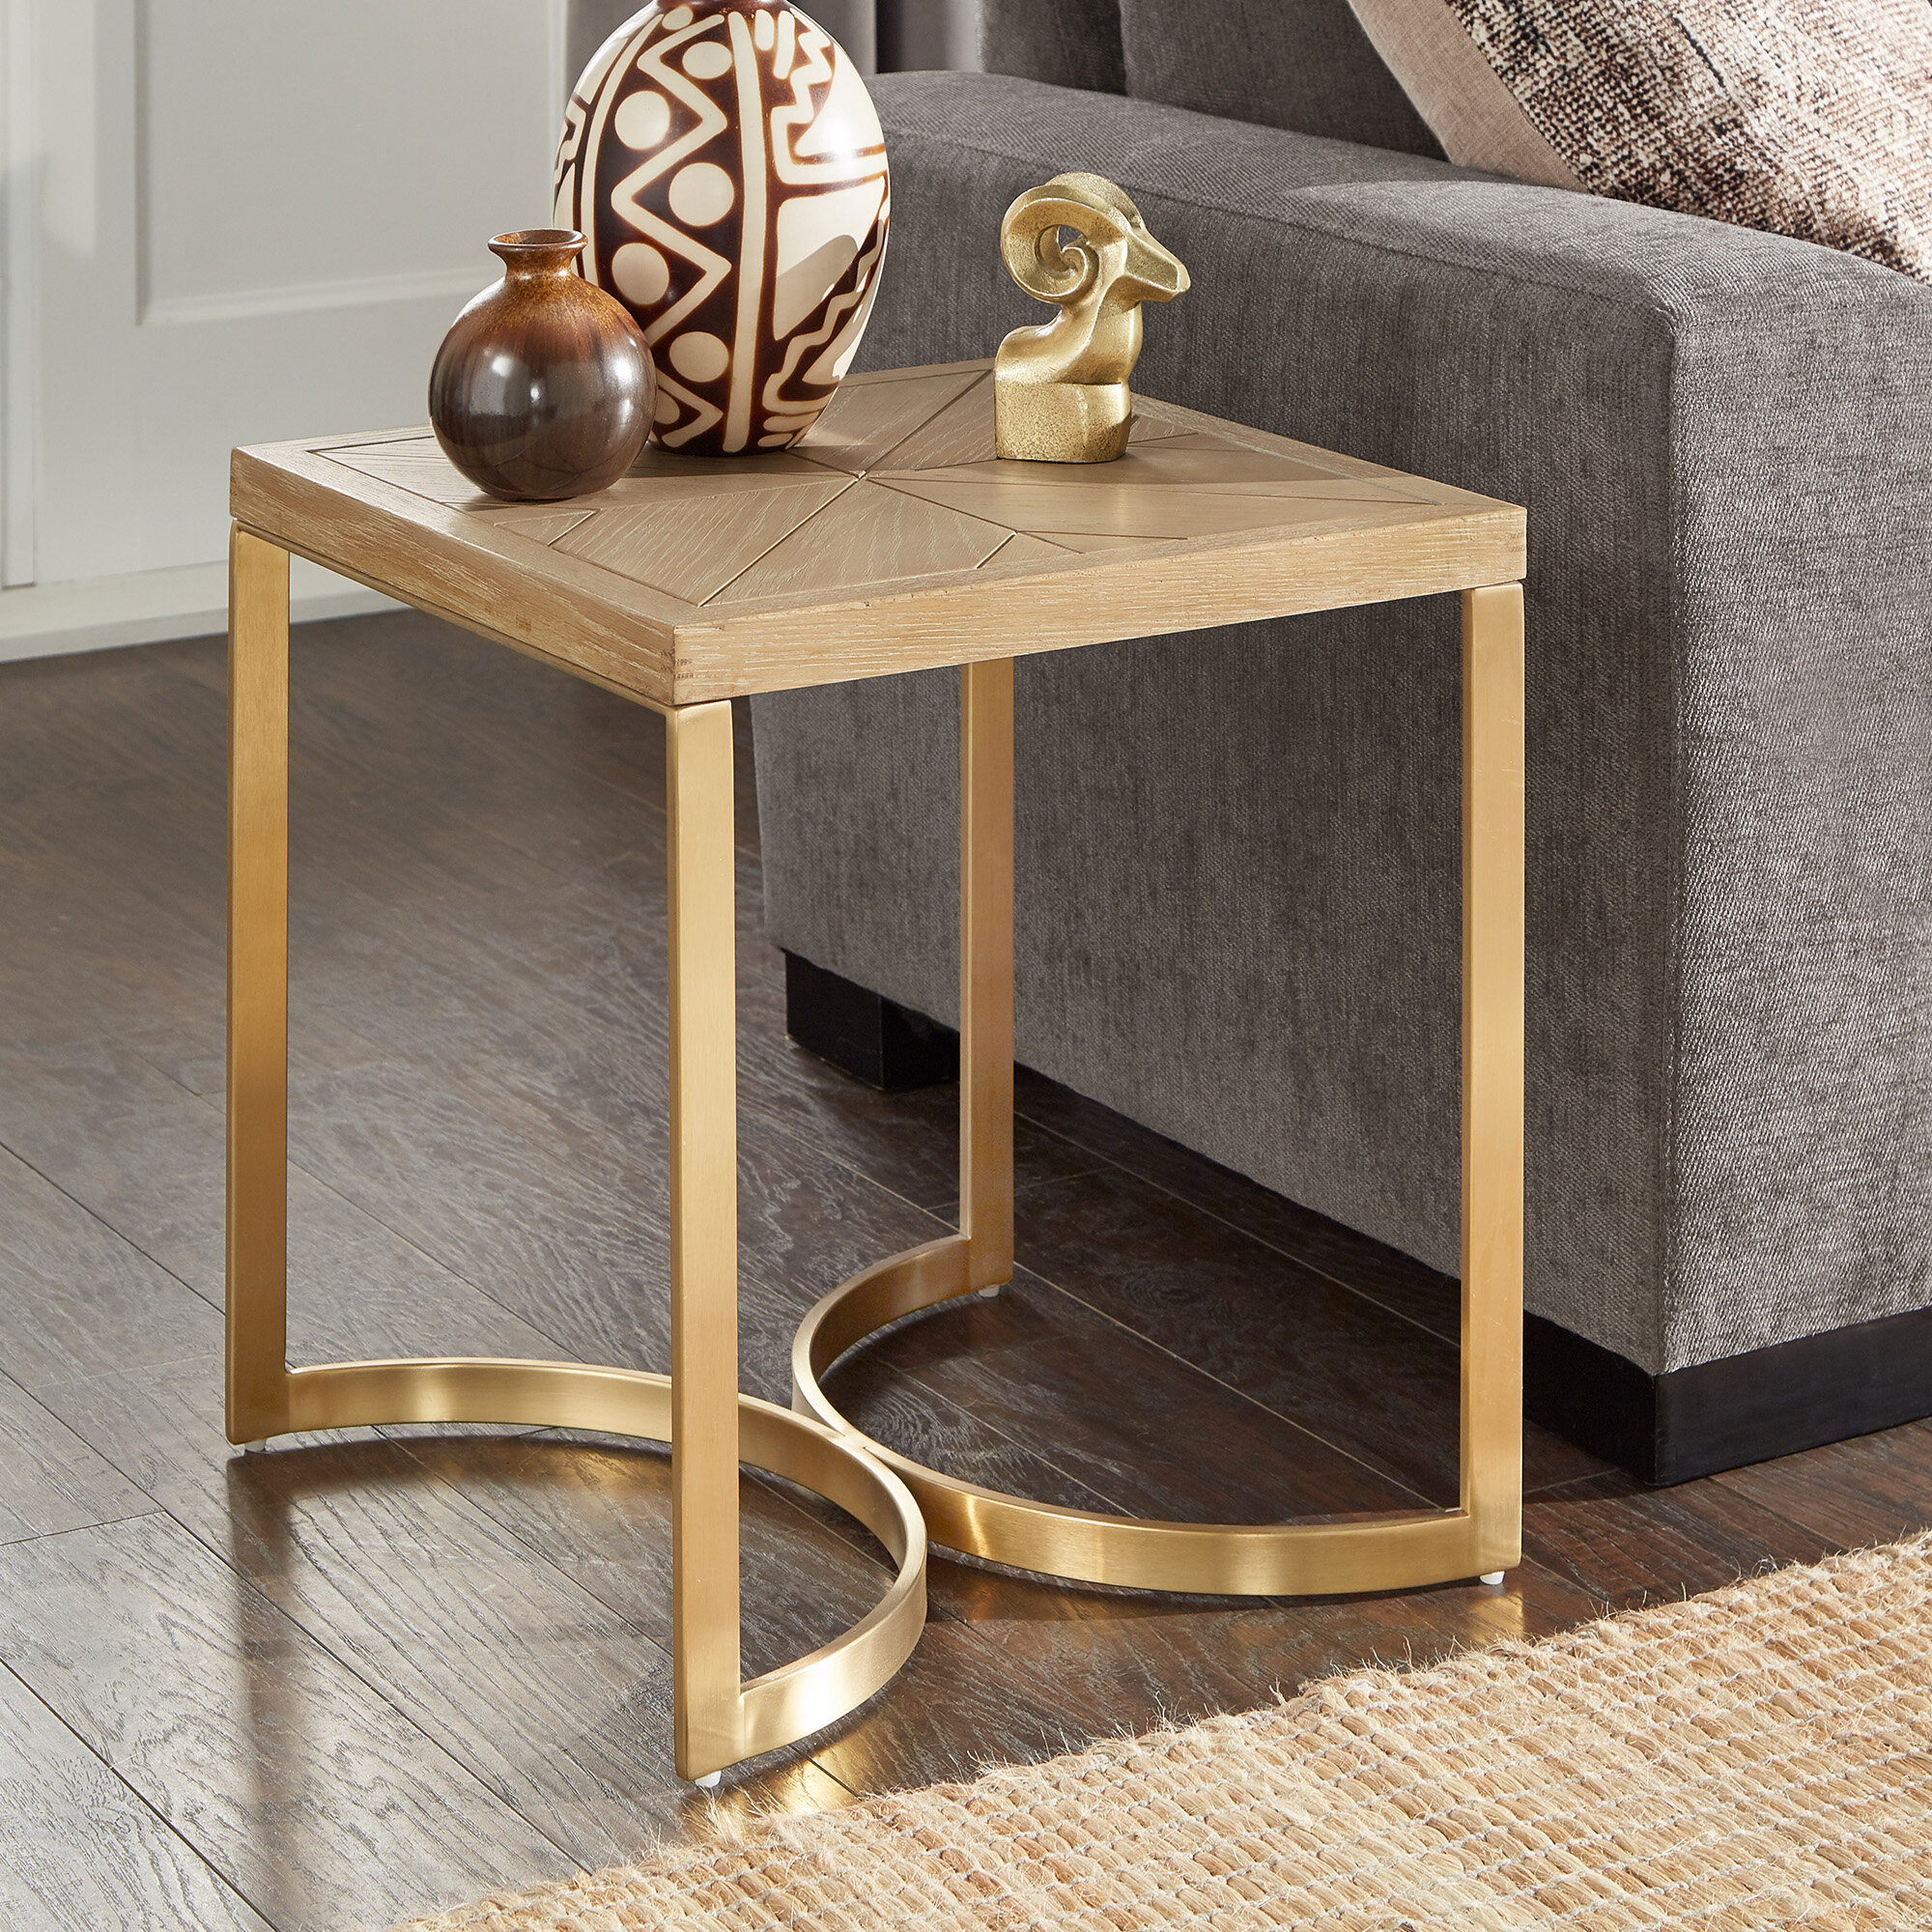 Beige Everly Quinn End Side Tables You Ll Love In 2021 Wayfair